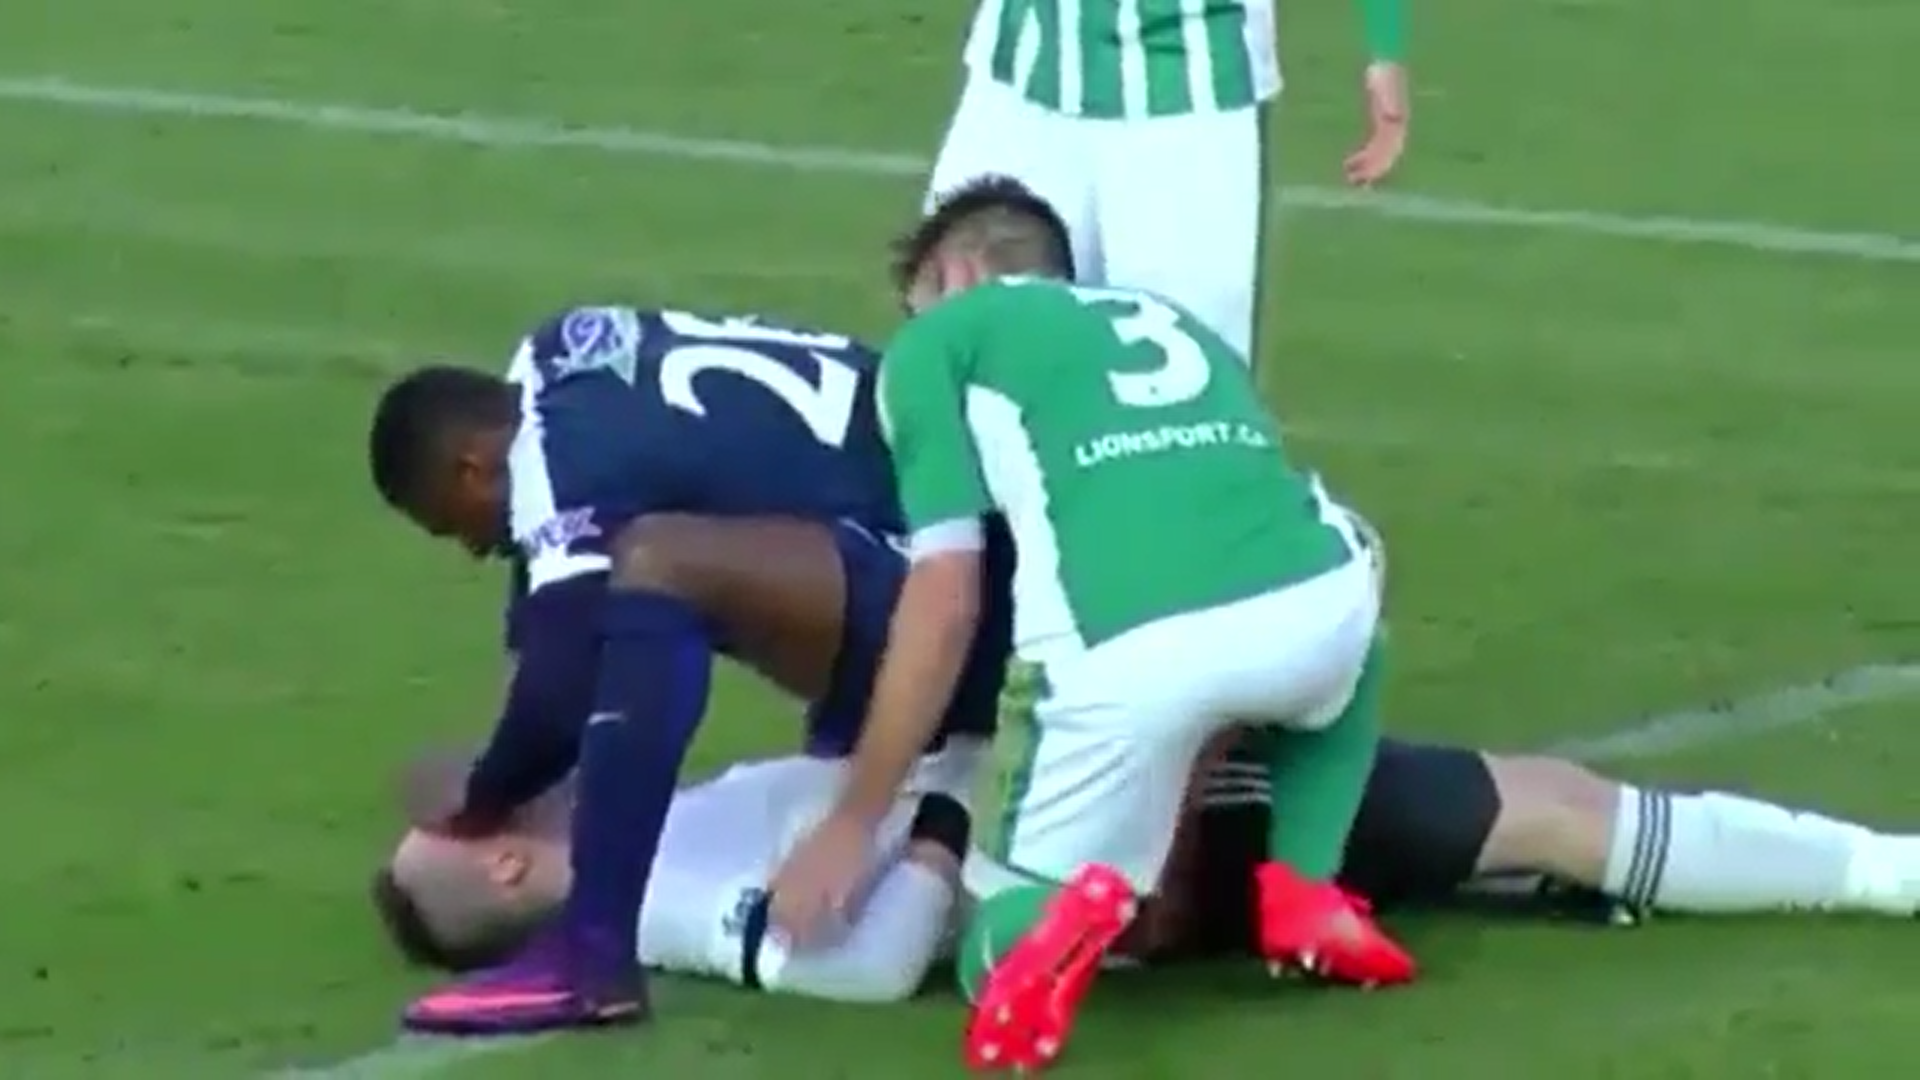 Francis Kone saves opposition goalkeeper Martin Berkovec's life after horrific collision